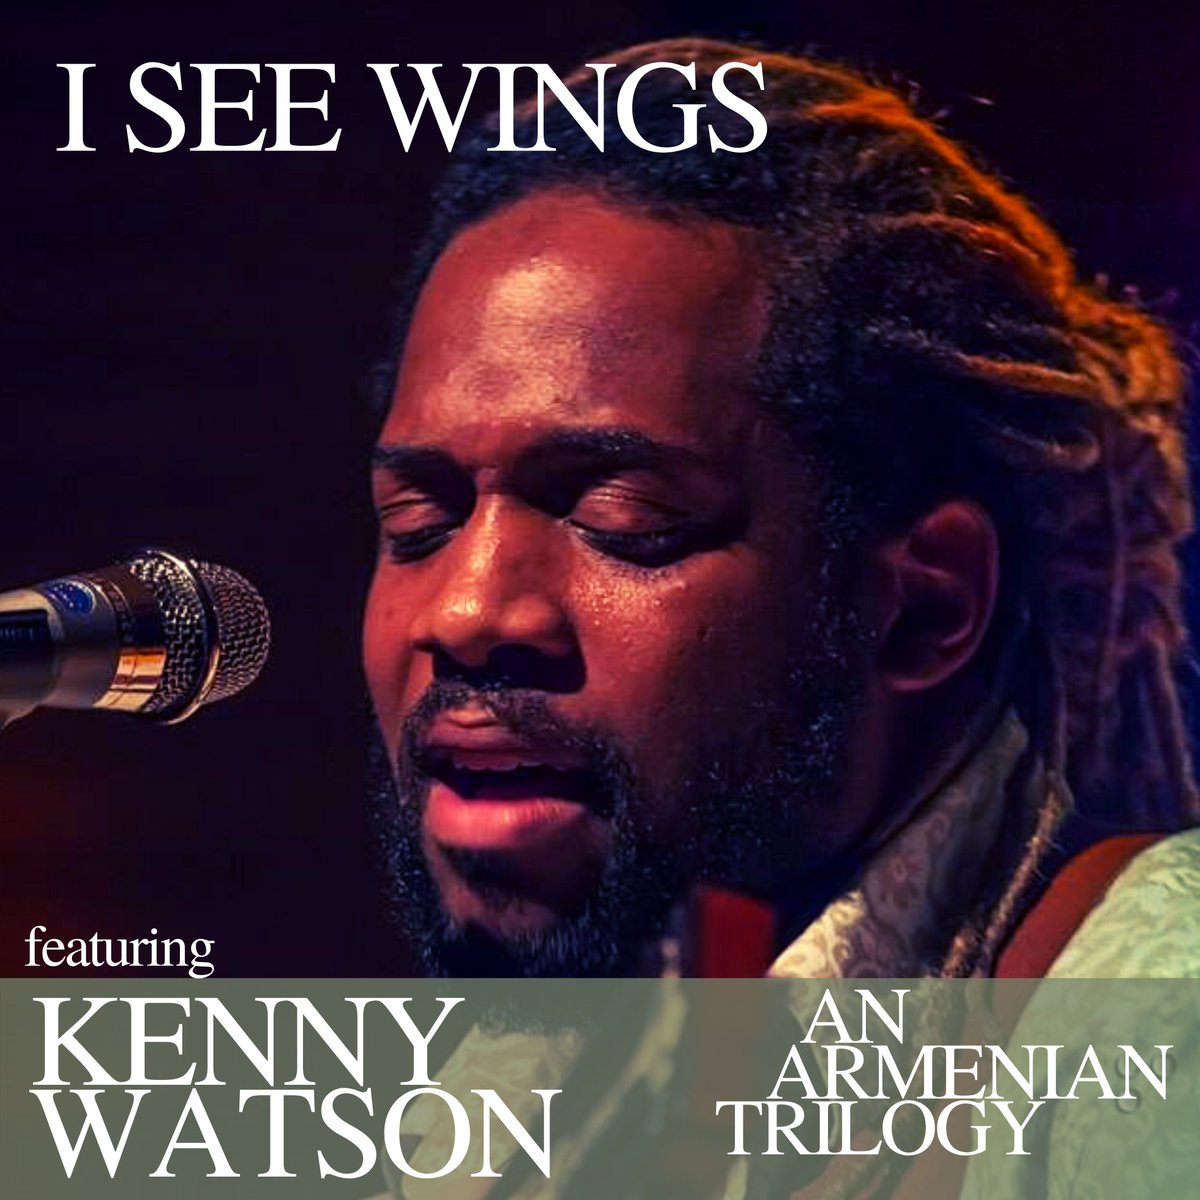 """I See Wings"" @1KennyWatson  now available on iTunes https://t.co/T1XIIw3vkJ Spotify https://t.co/fjabCWT84Q And More! https://t.co/dxTTRgwda5"